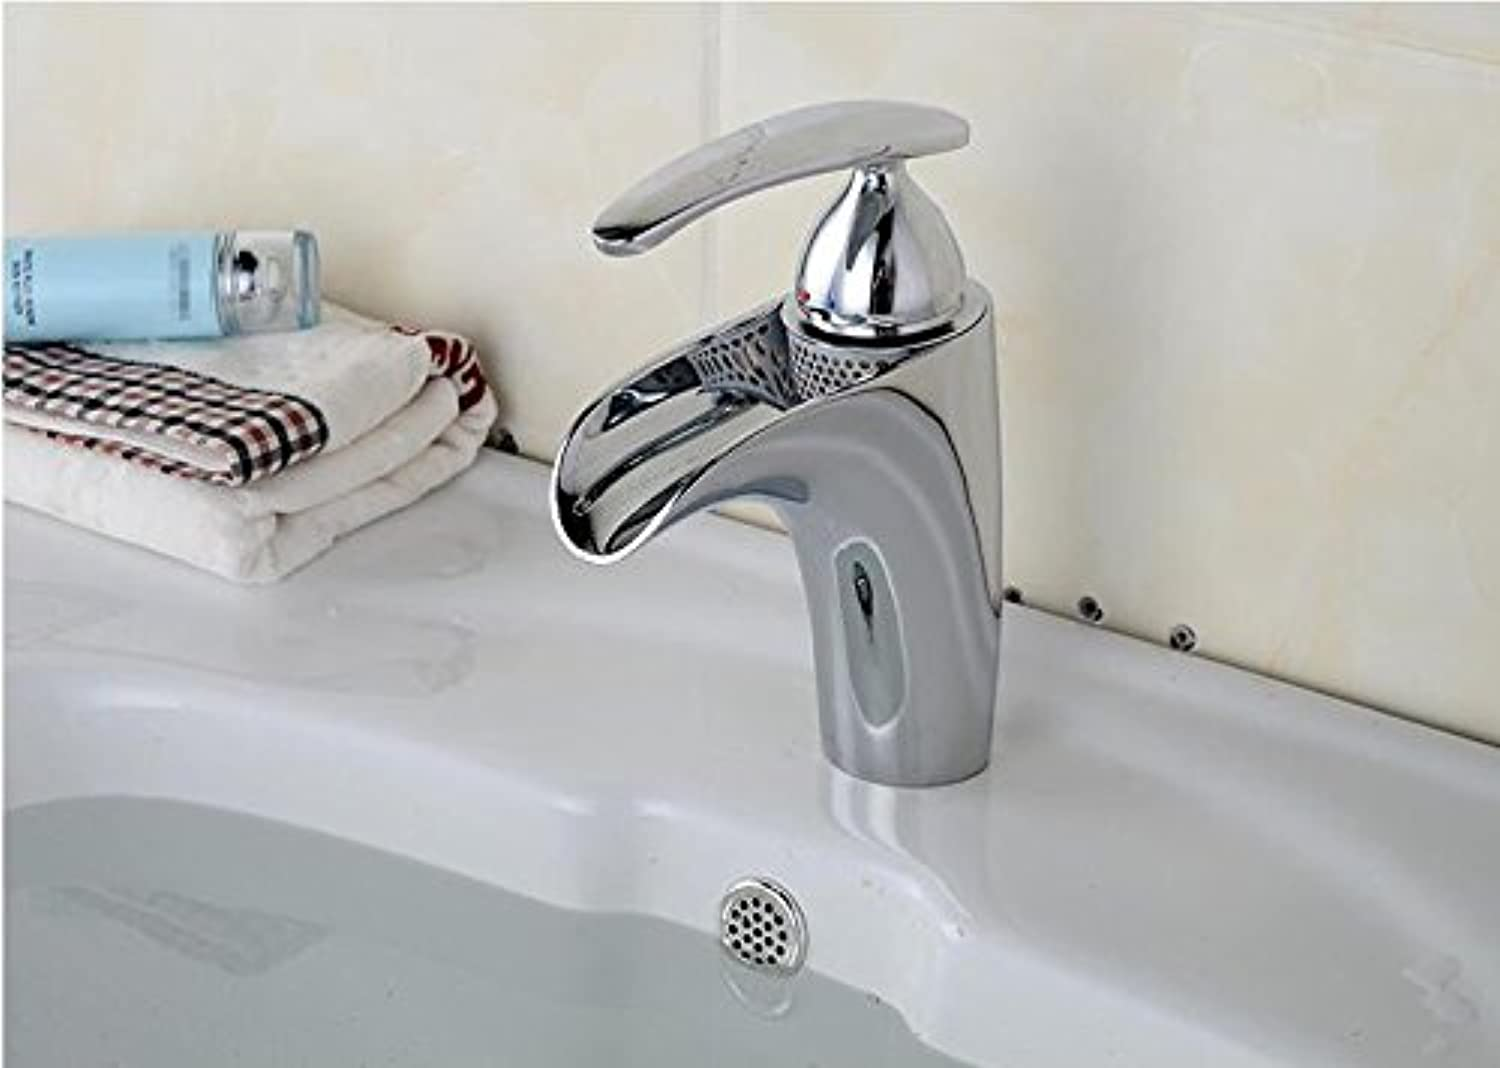 Ytdzsw Contemporary Bathroom Sink Single Lever Faucet Bathroom Faucet Hot And Cold Water Bathroom Faucet